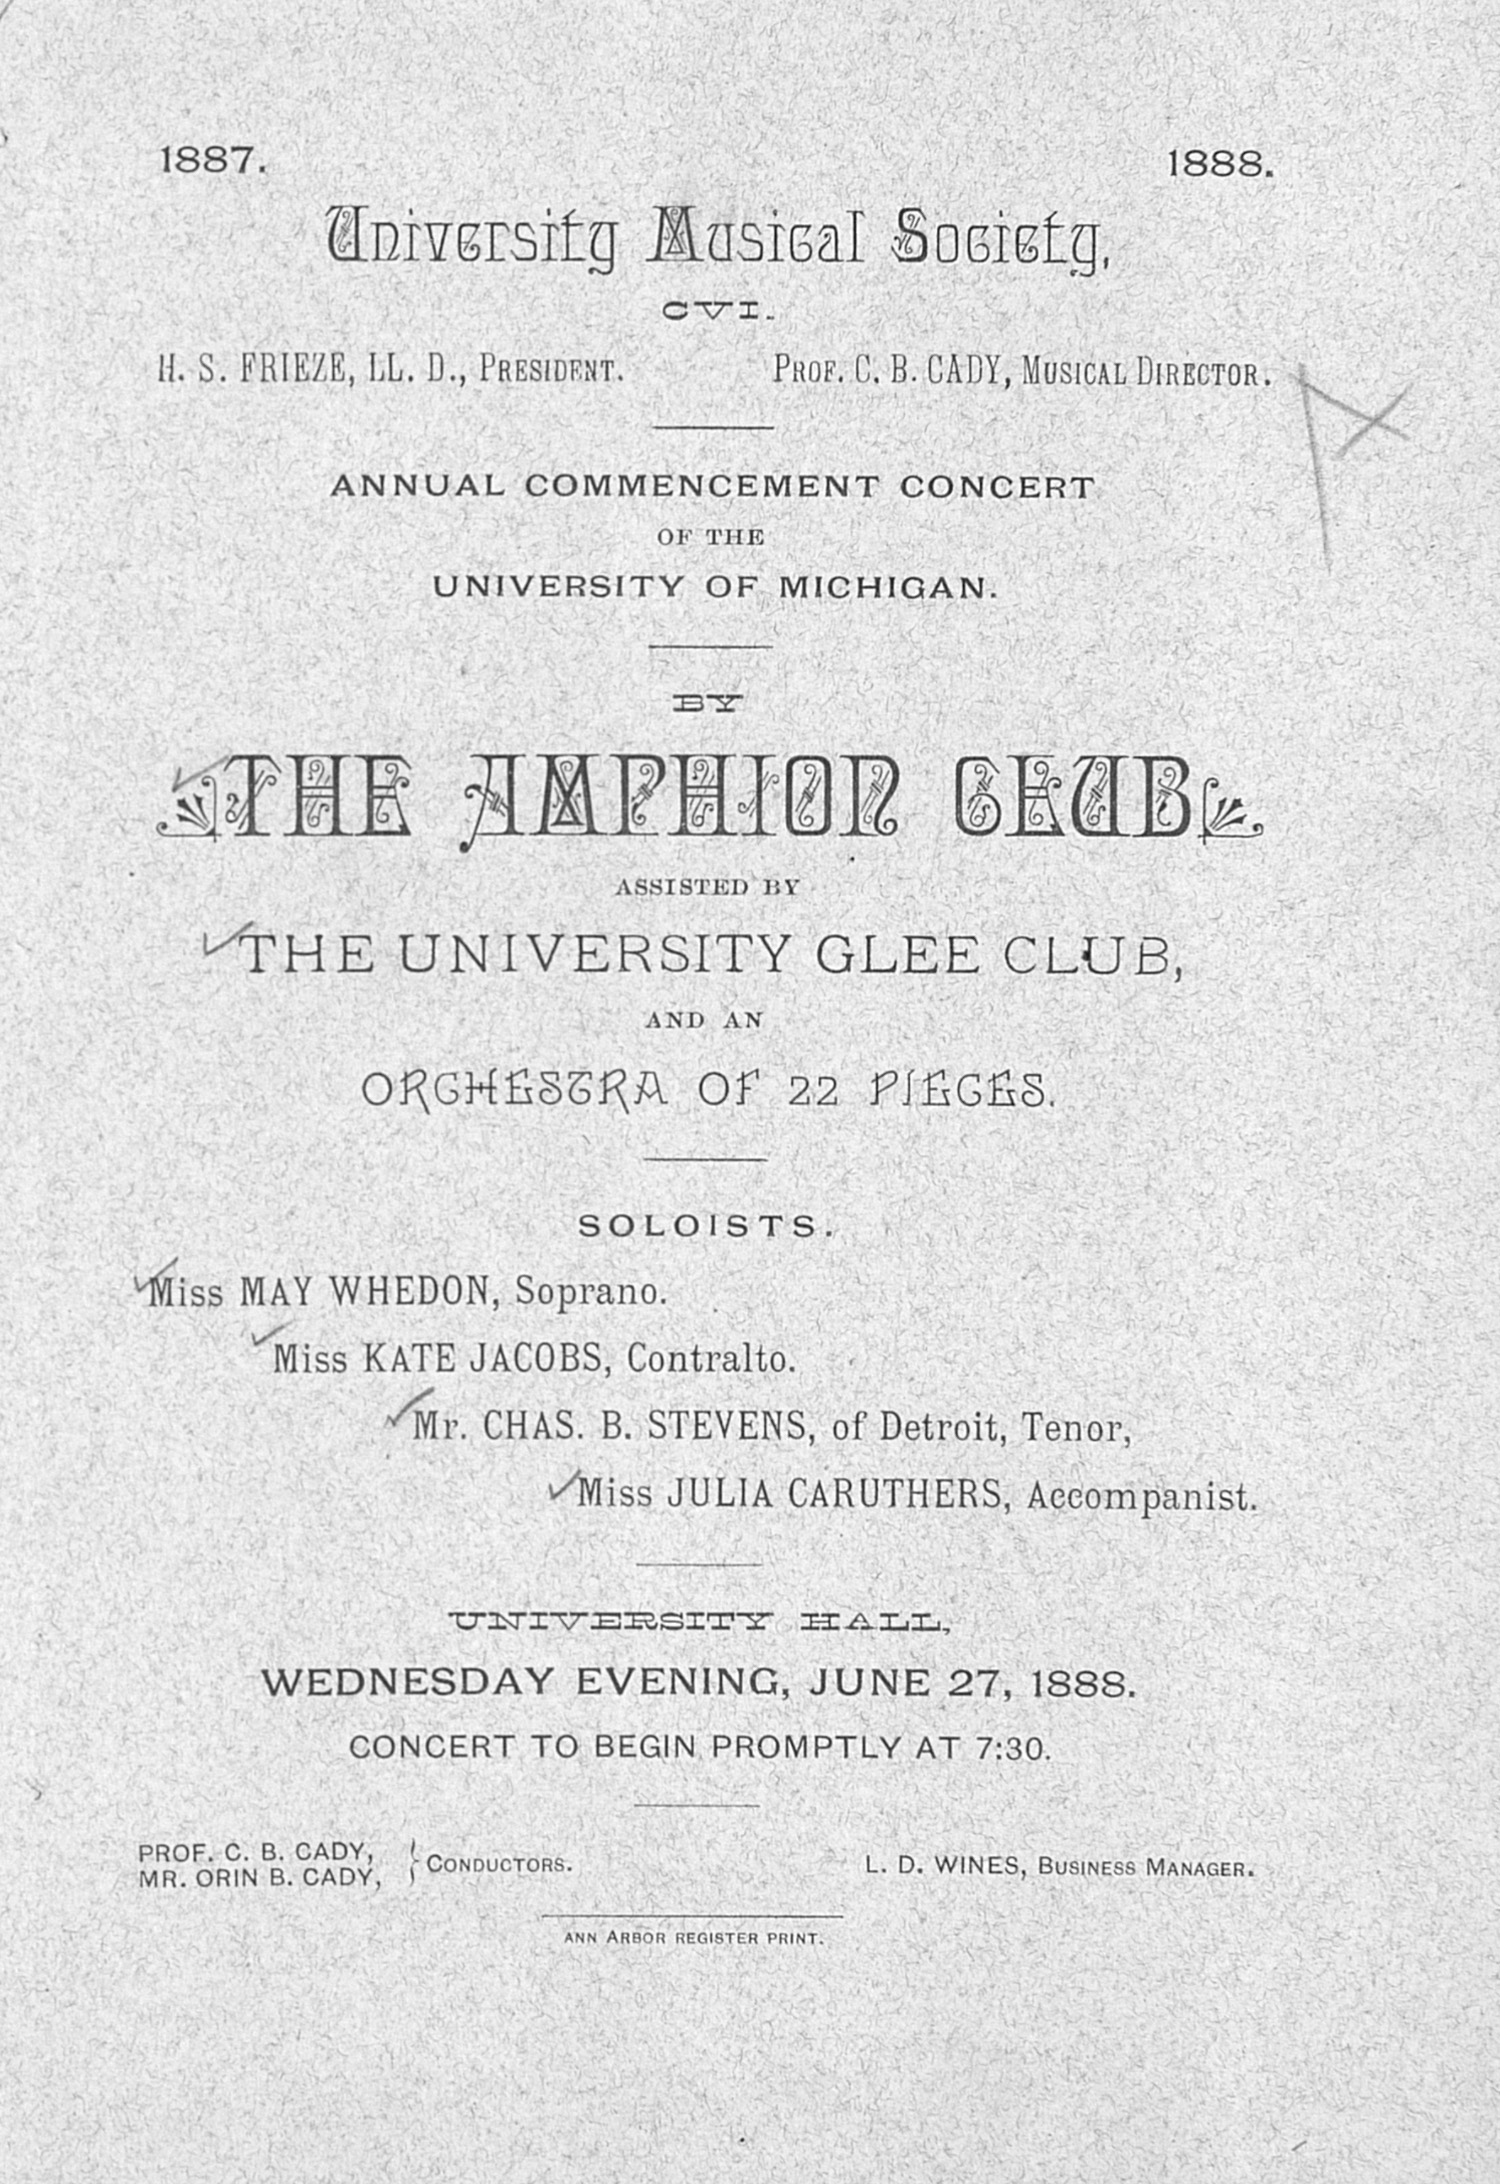 UMS Concert Program, June 27, 1888: Annual Commencement Concert Of The University Of Michigan -- The Amphion Club  image